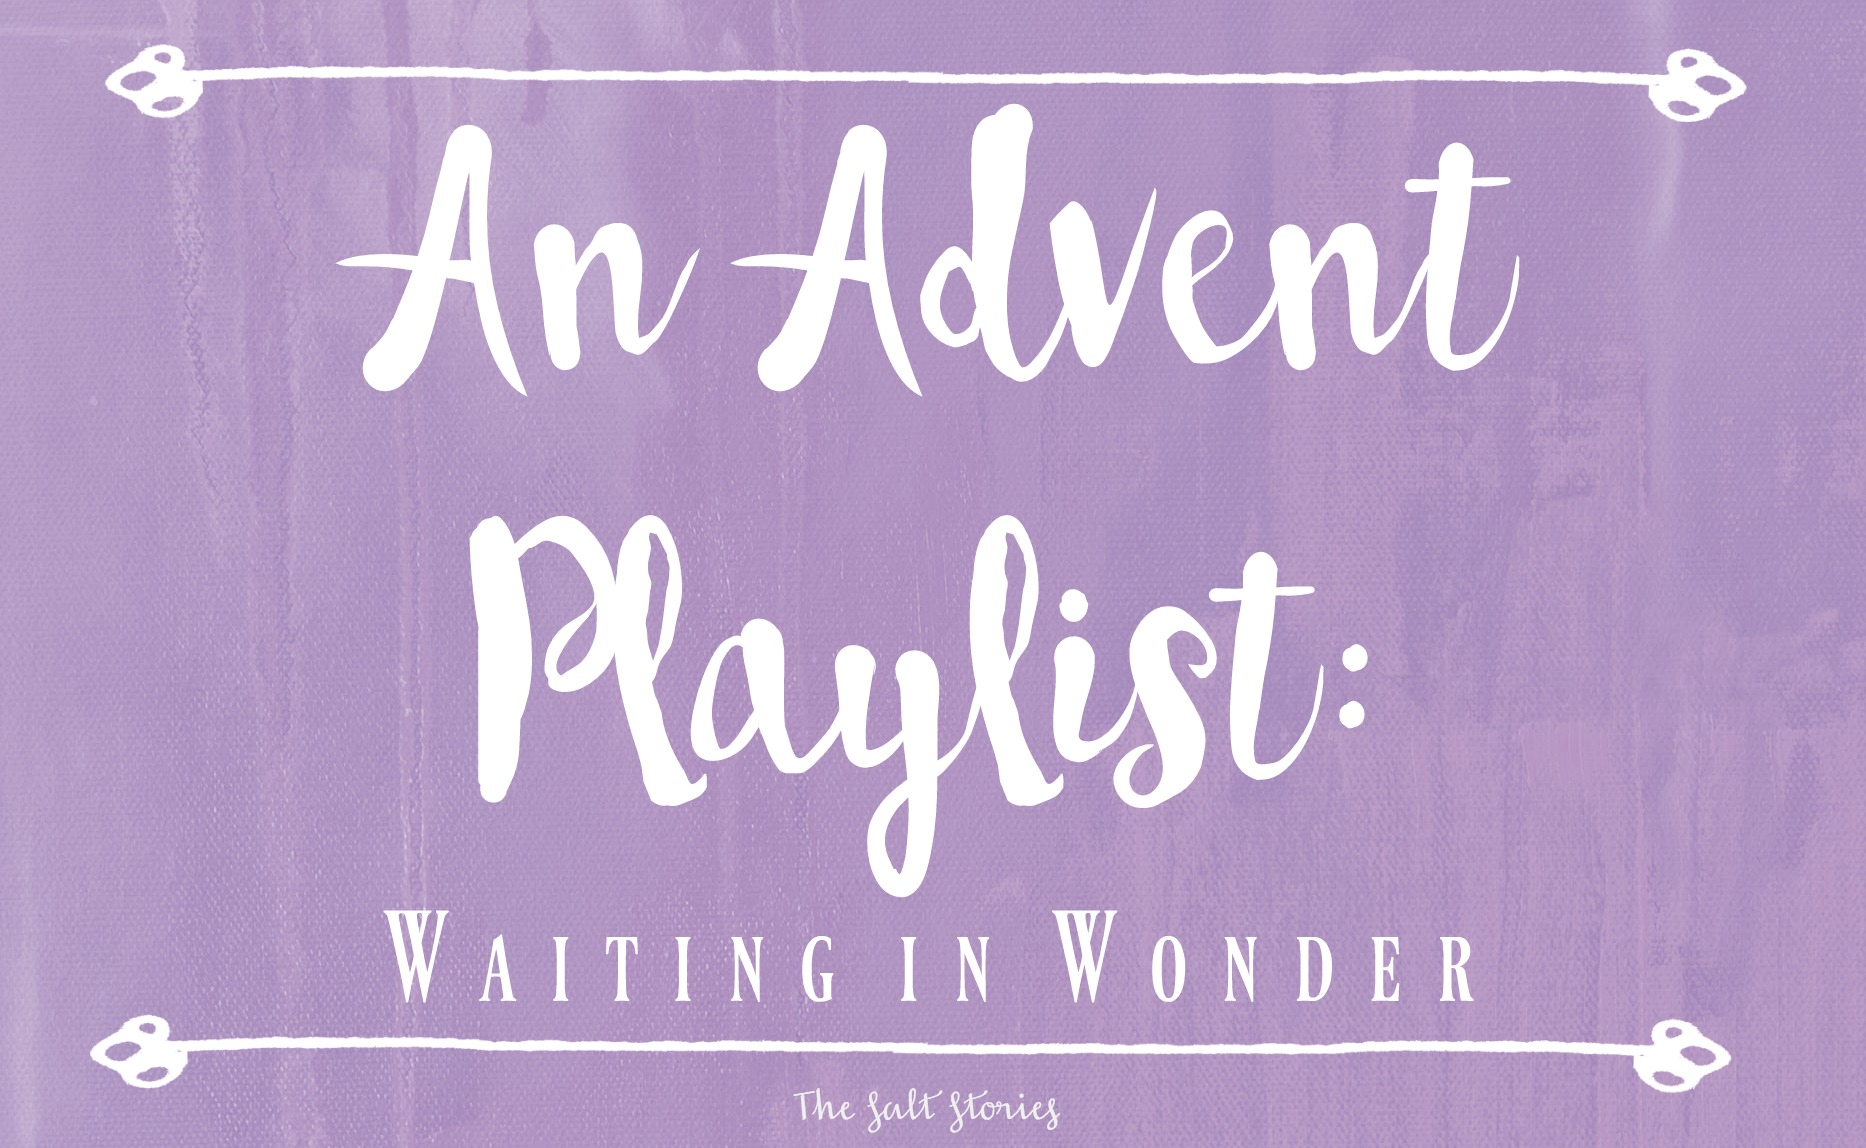 Advent Playlist: Waiting in Wonder @ The Salt Stories